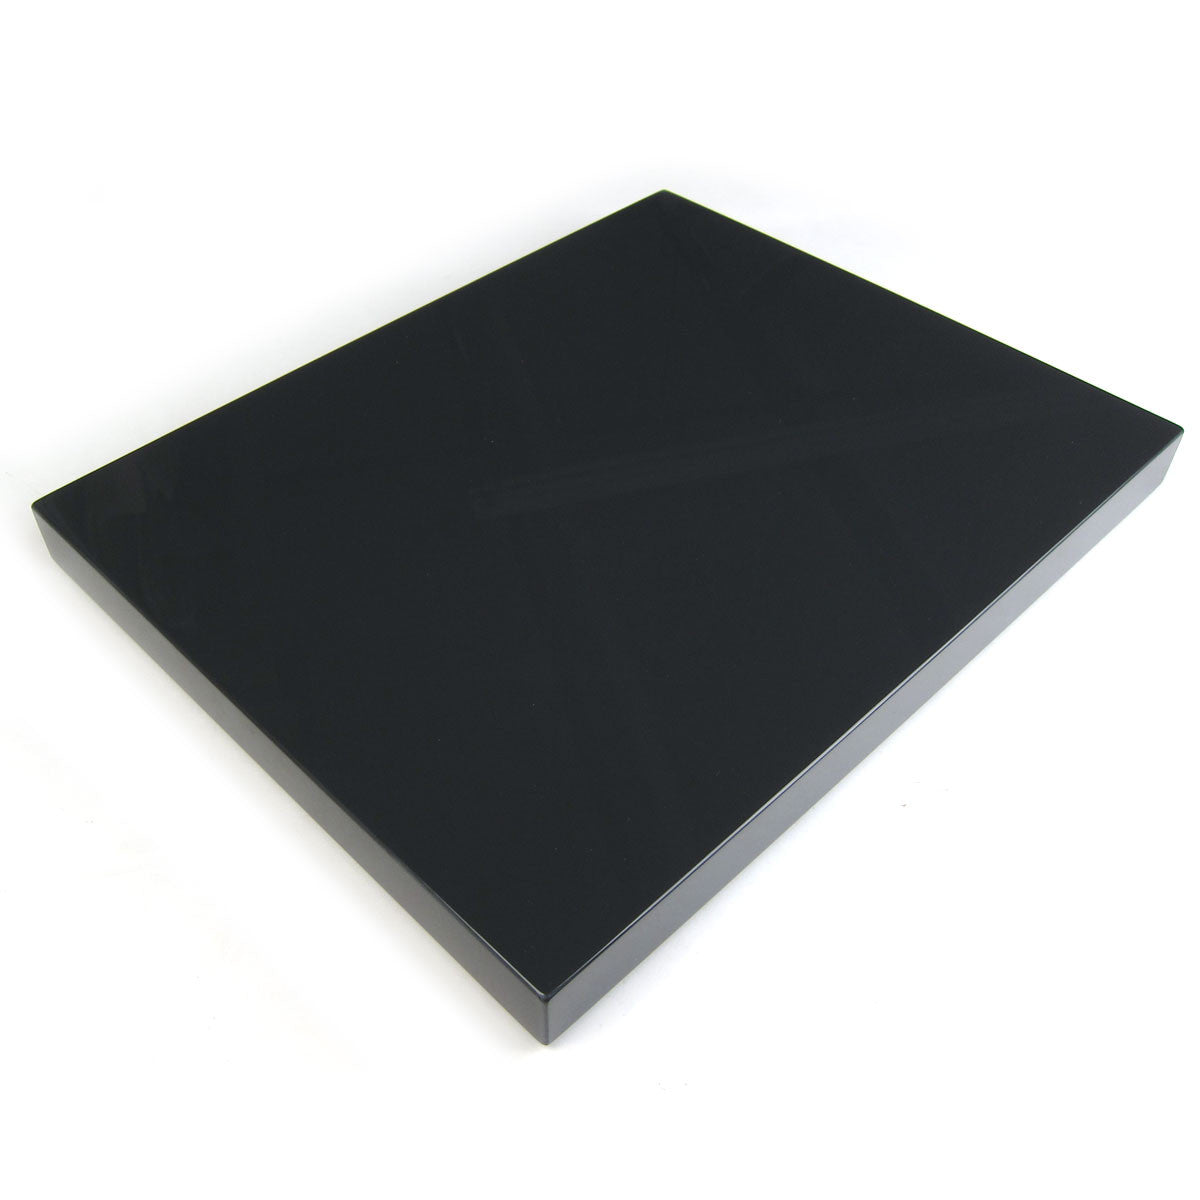 Pro-Ject: Ground It Deluxe 1 Turntable Base - High Gloss Black